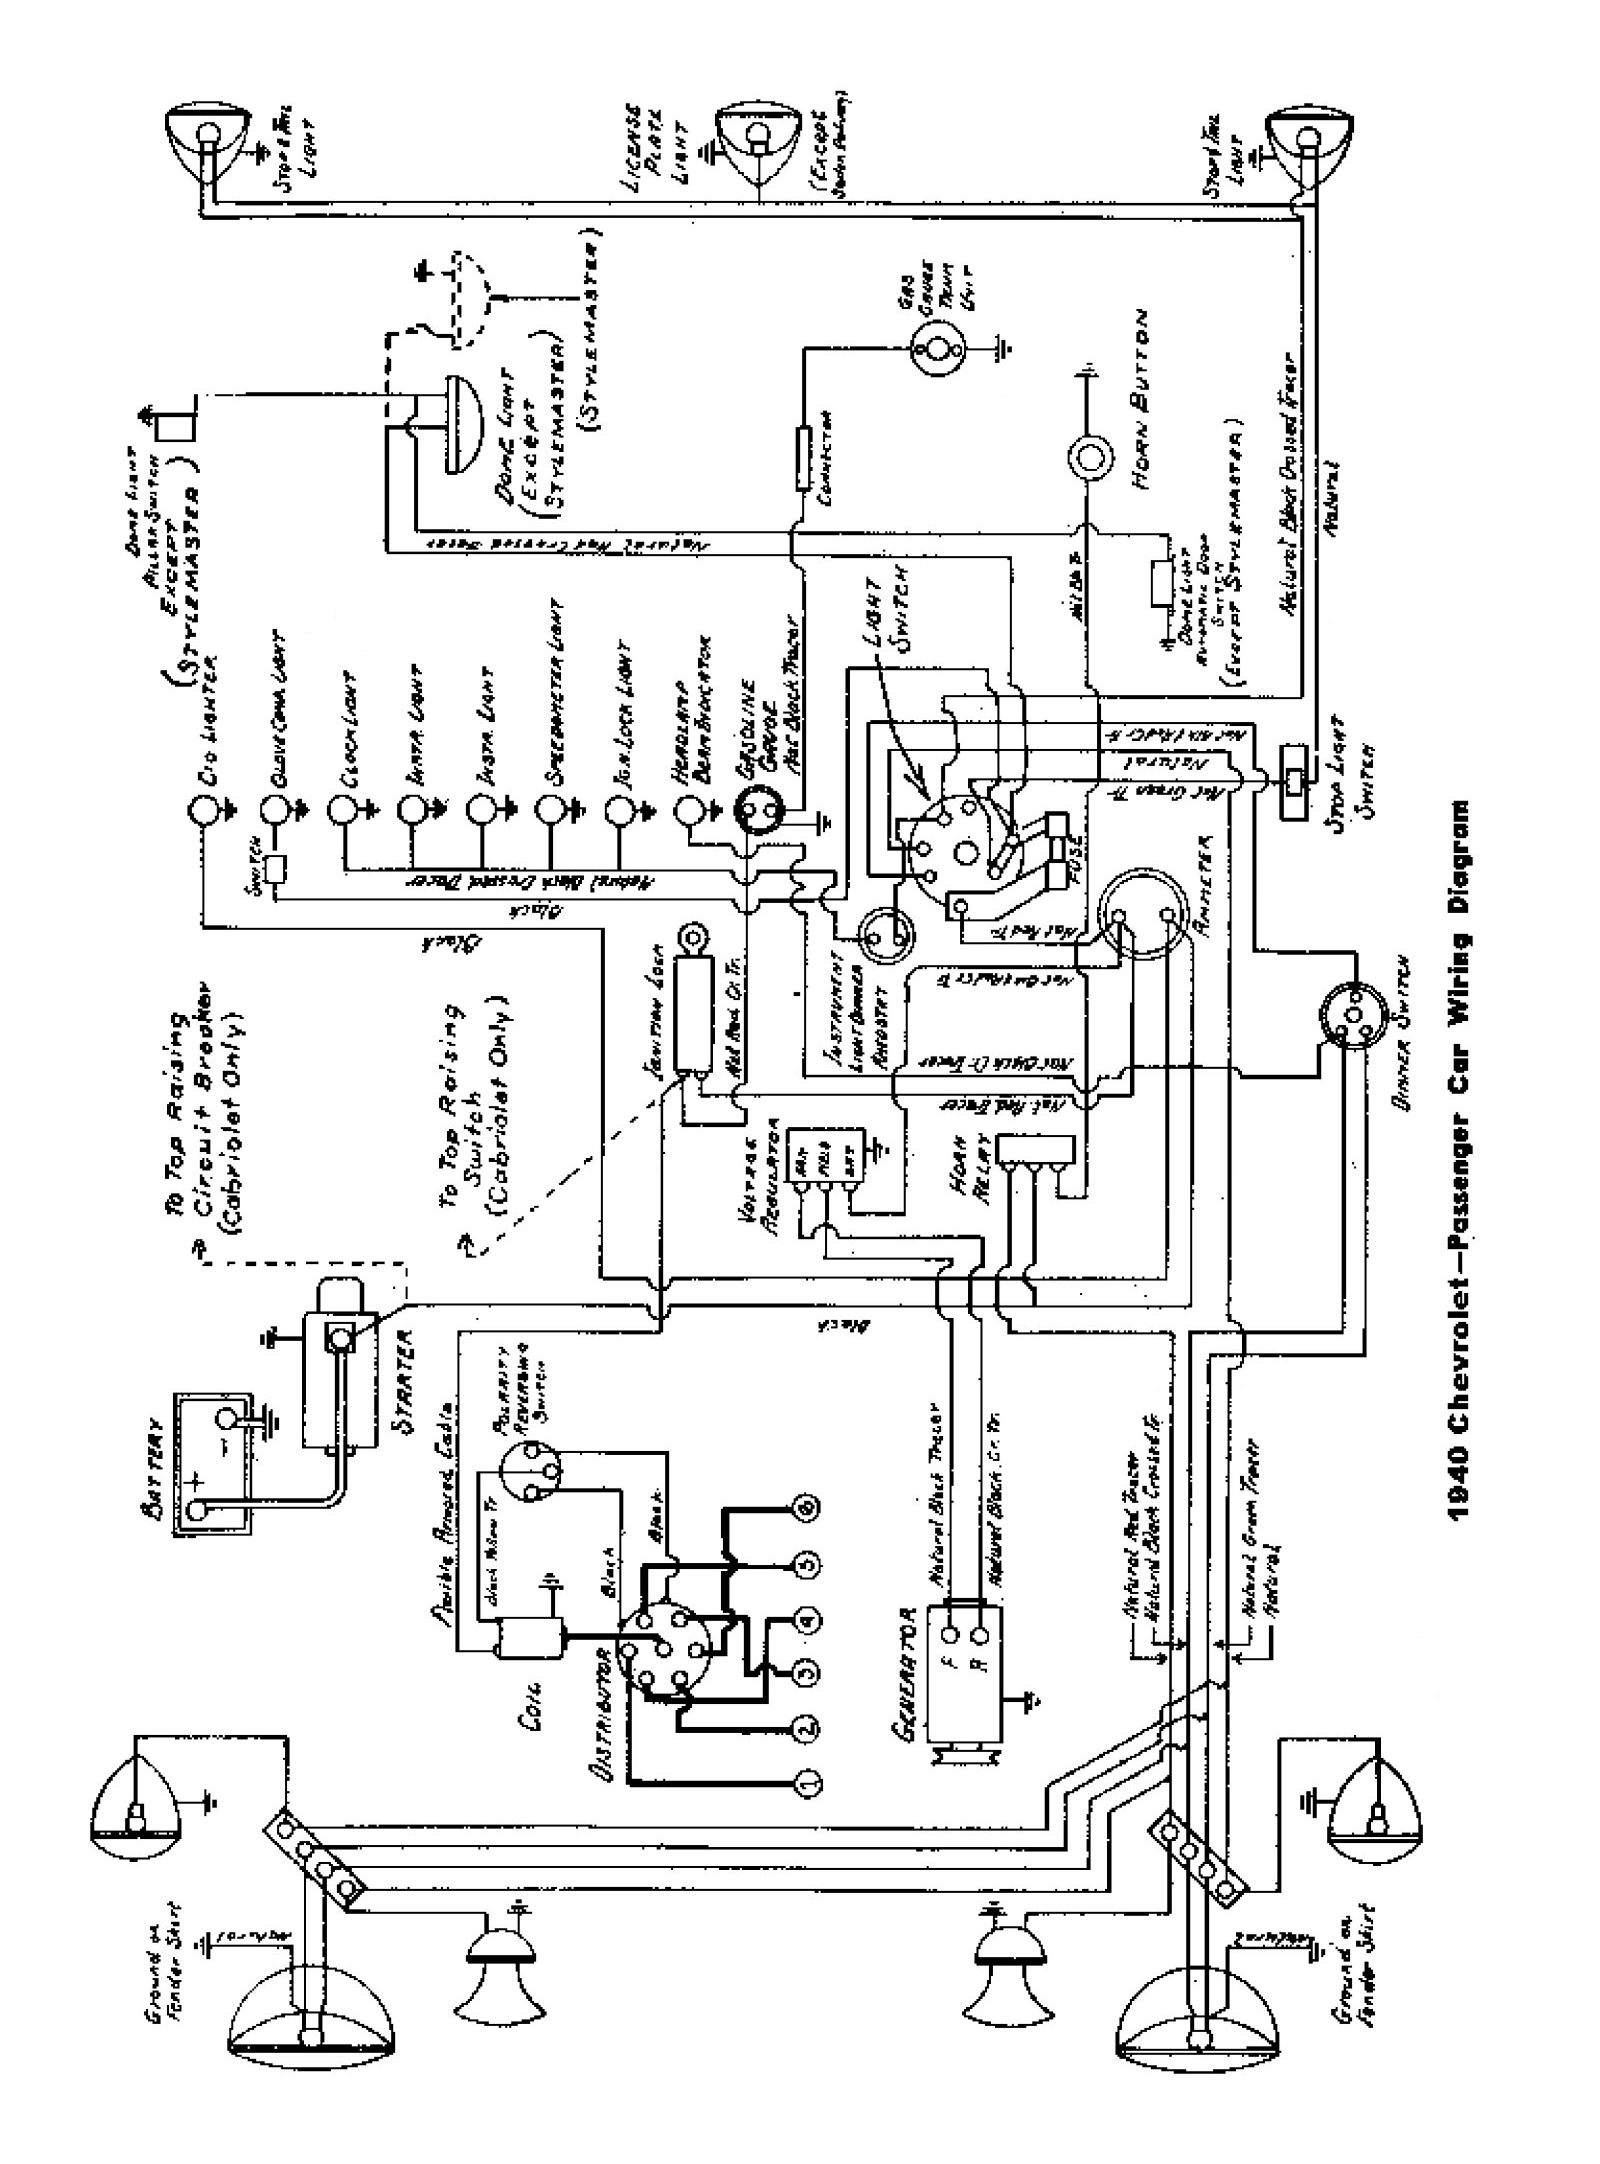 1941 buick wiring diagram free wiring diagrams the